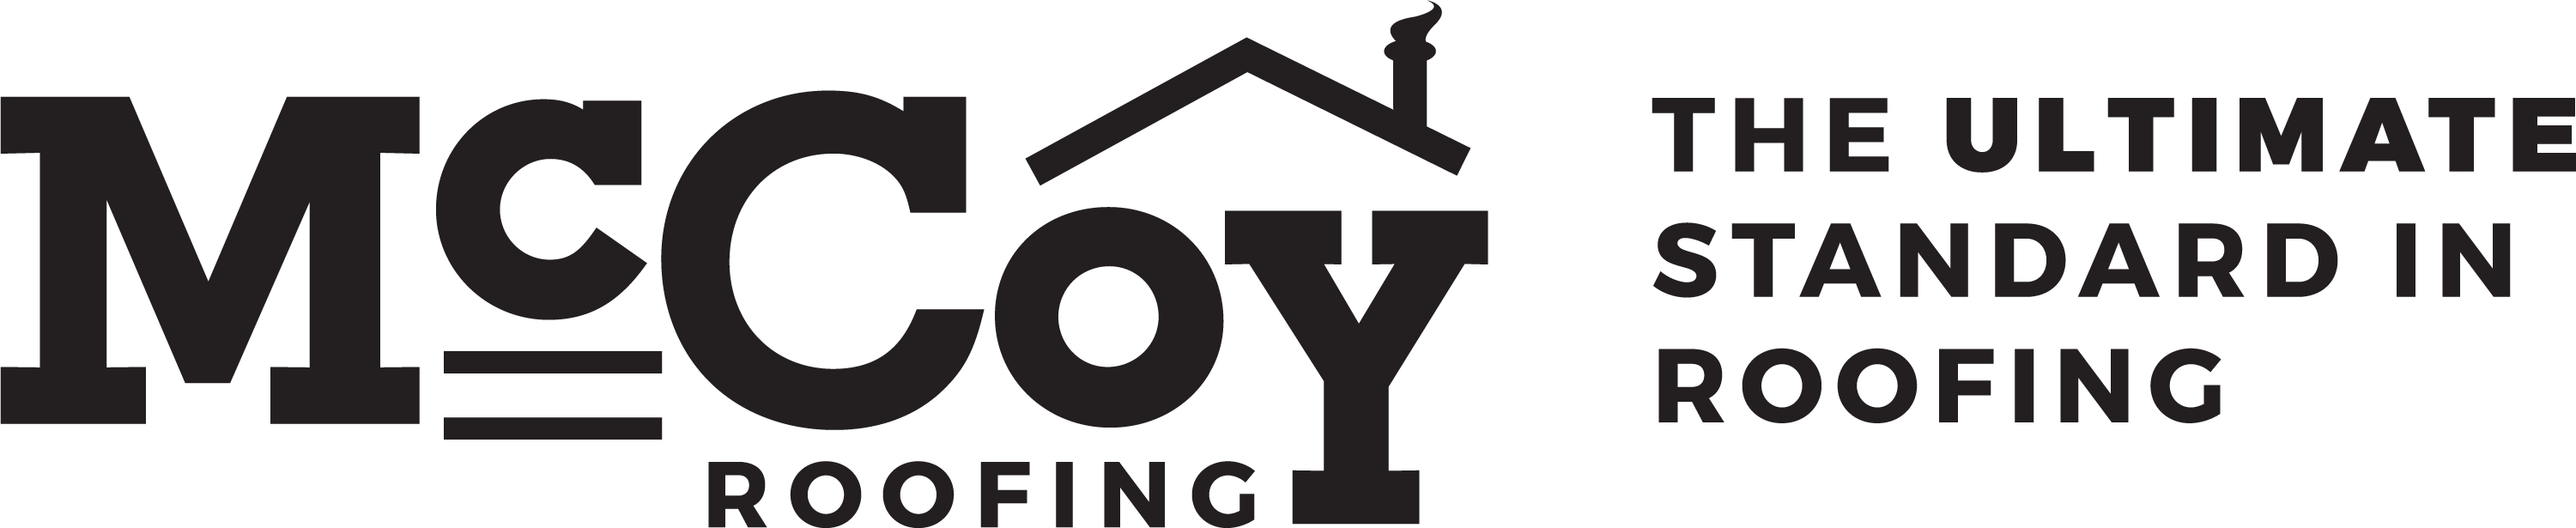 Mccoy Roofing, Siding & Contracting Logo